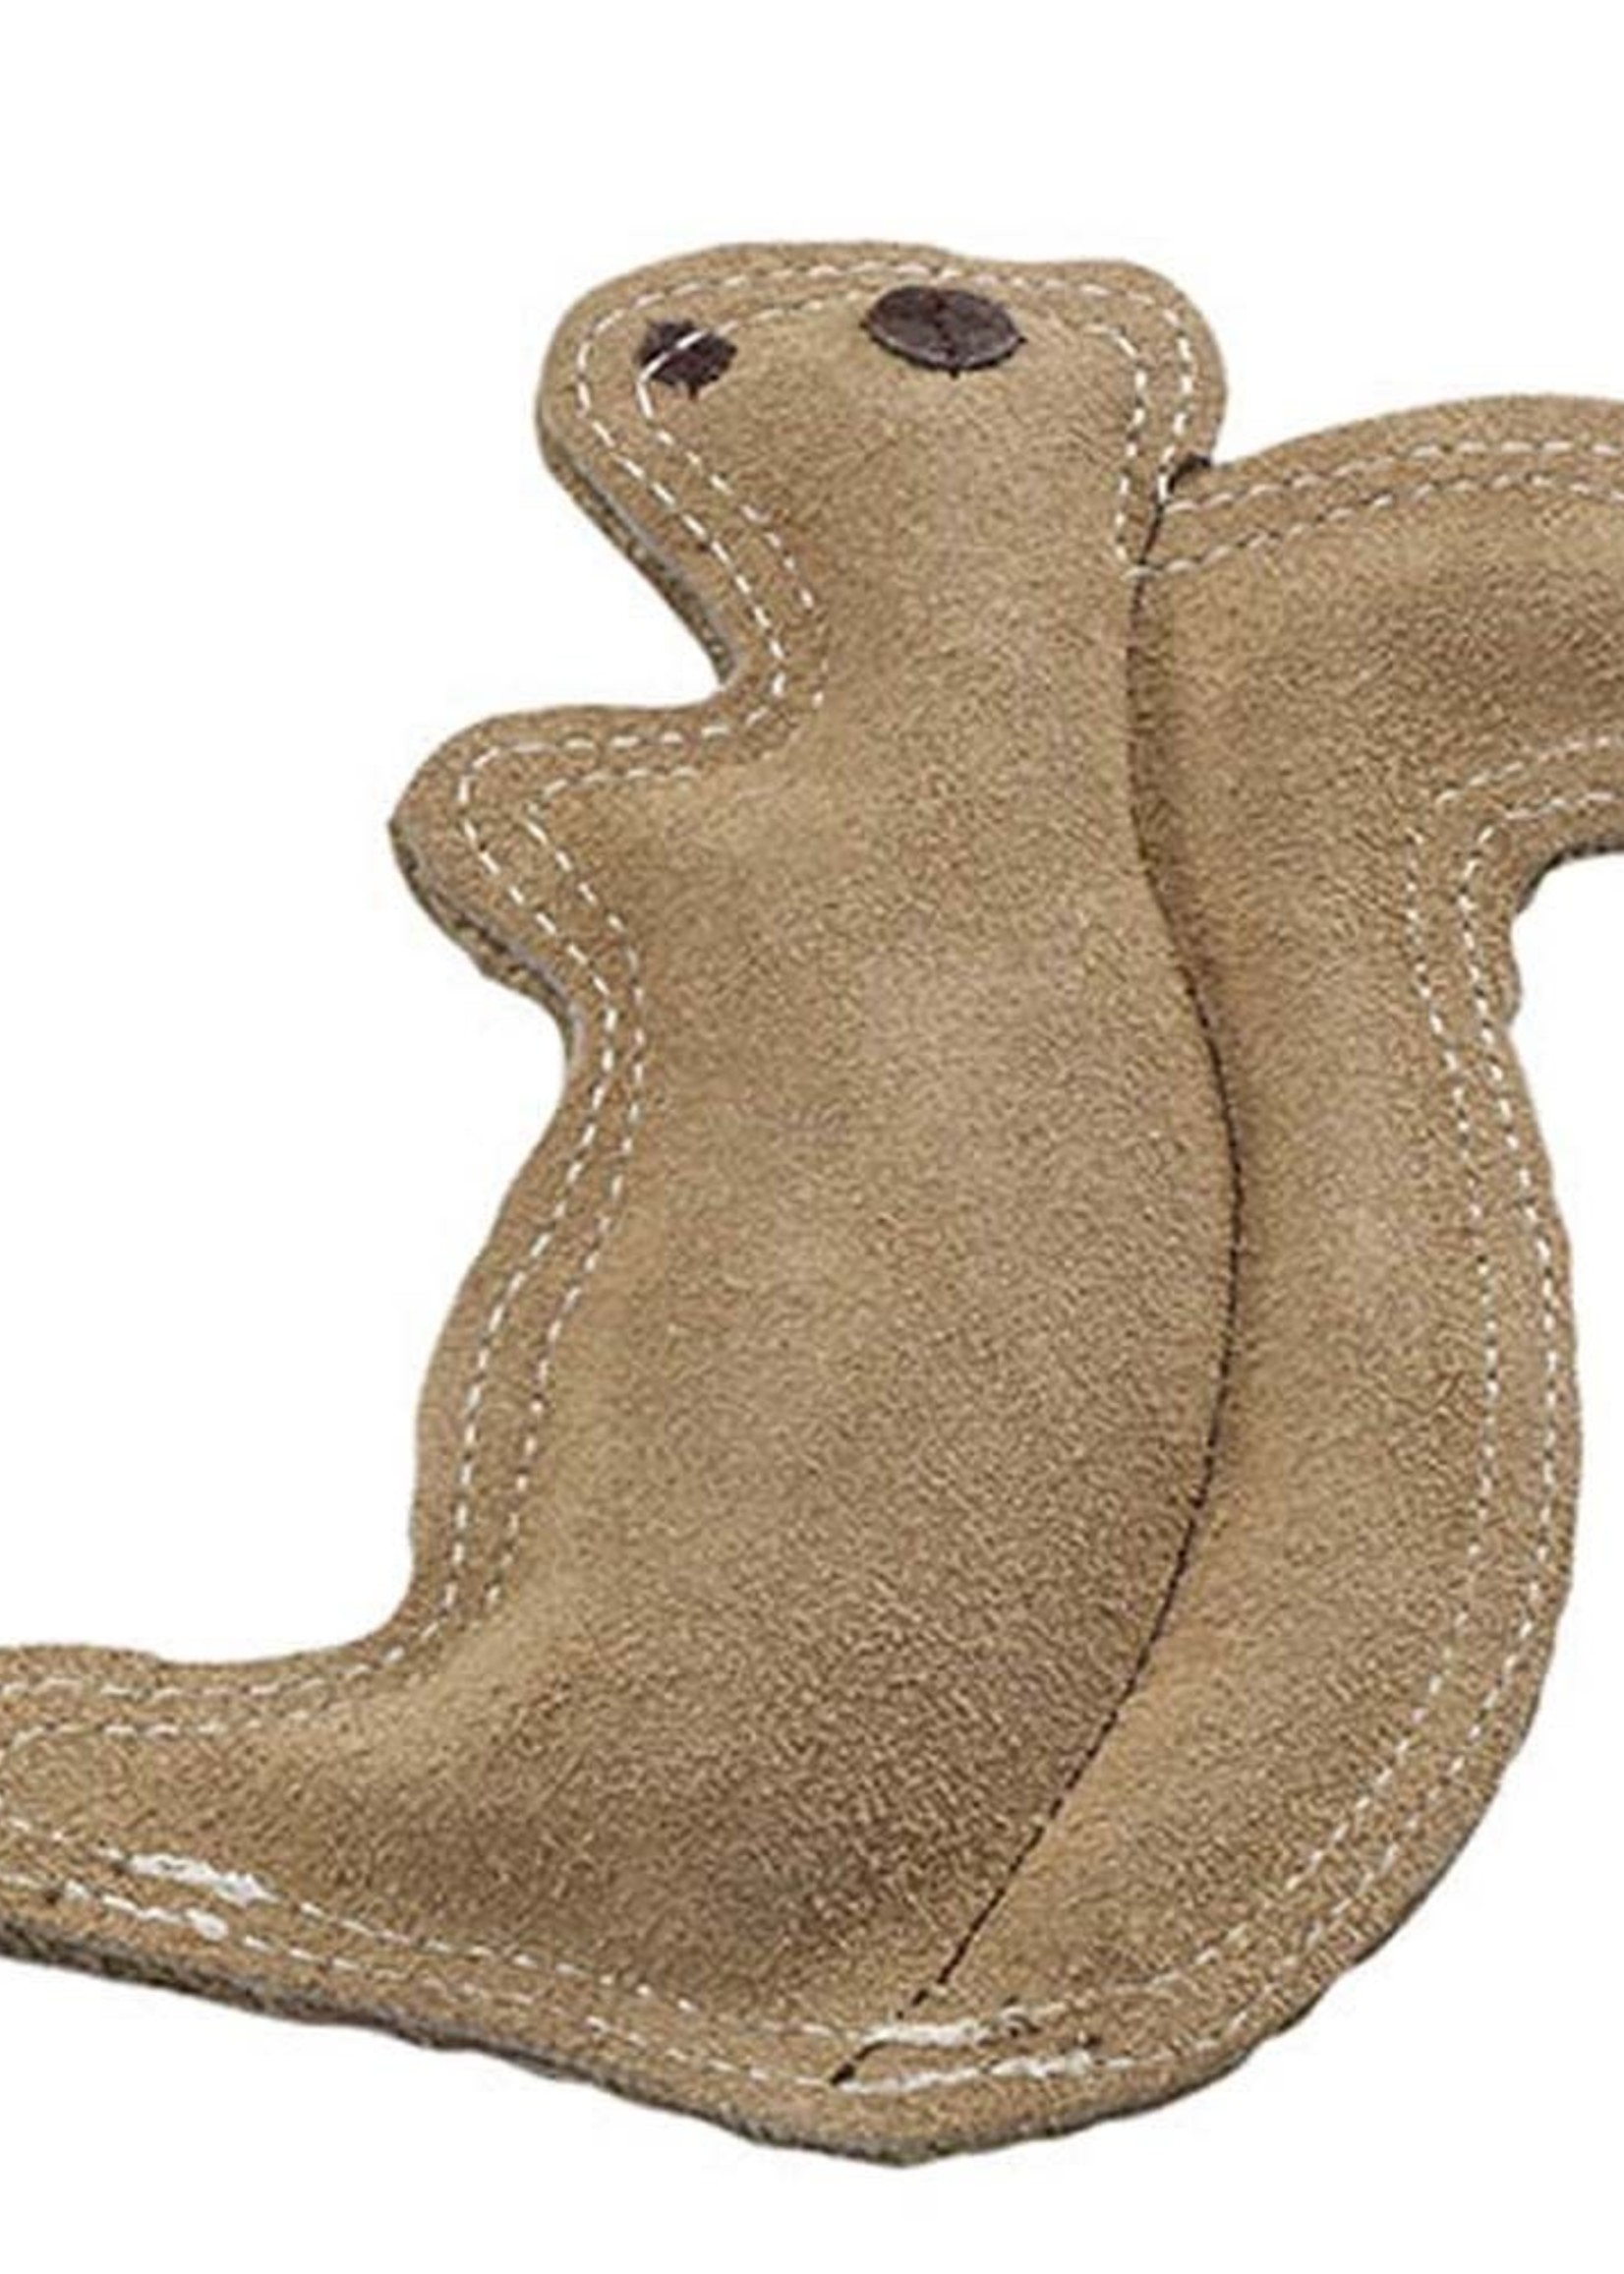 Ethical Product Inc./Fashion Pet/Lookin Good Spot Ethical Dura-Fused Leather & Jute Squirrel Small Toy